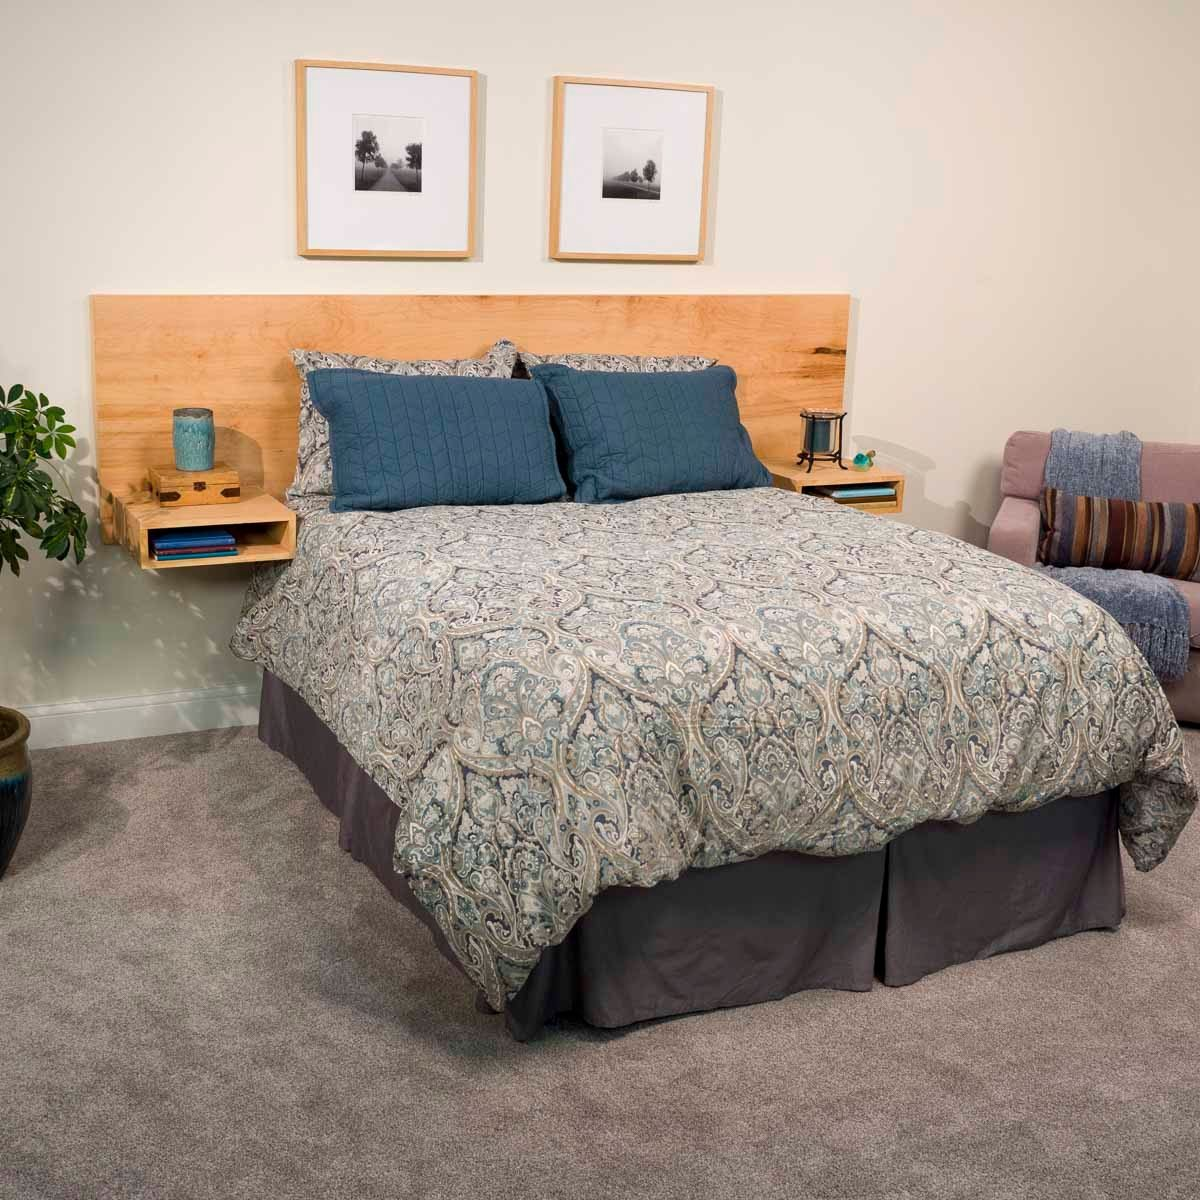 How to Build a Headboard     The Family Handyman Modern Floating Headboard Lead